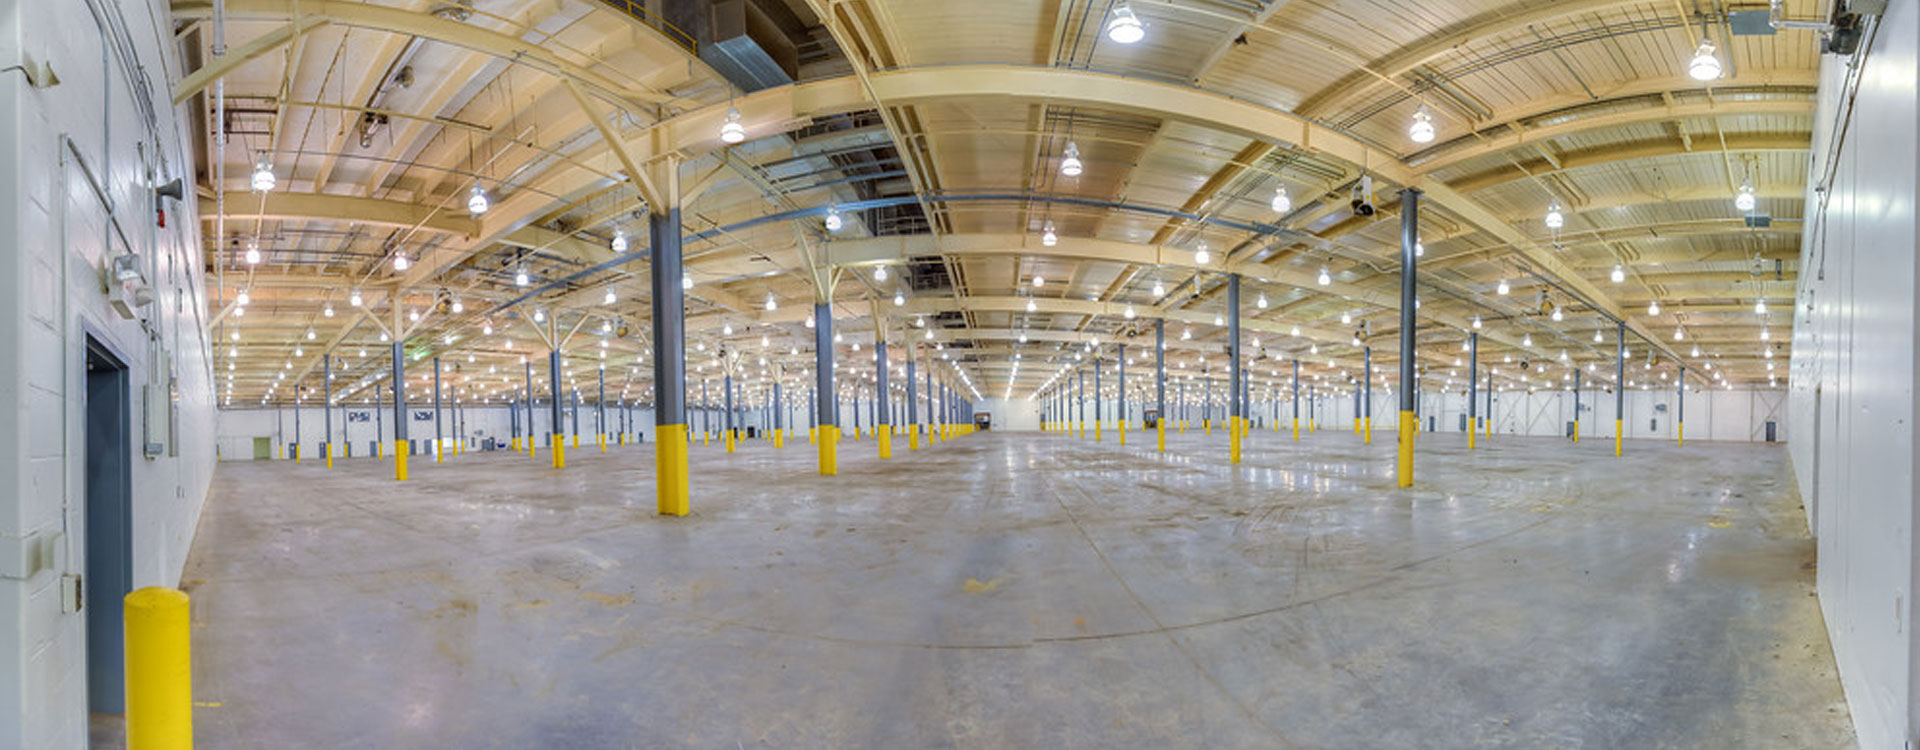 image of large commercial warehouse property